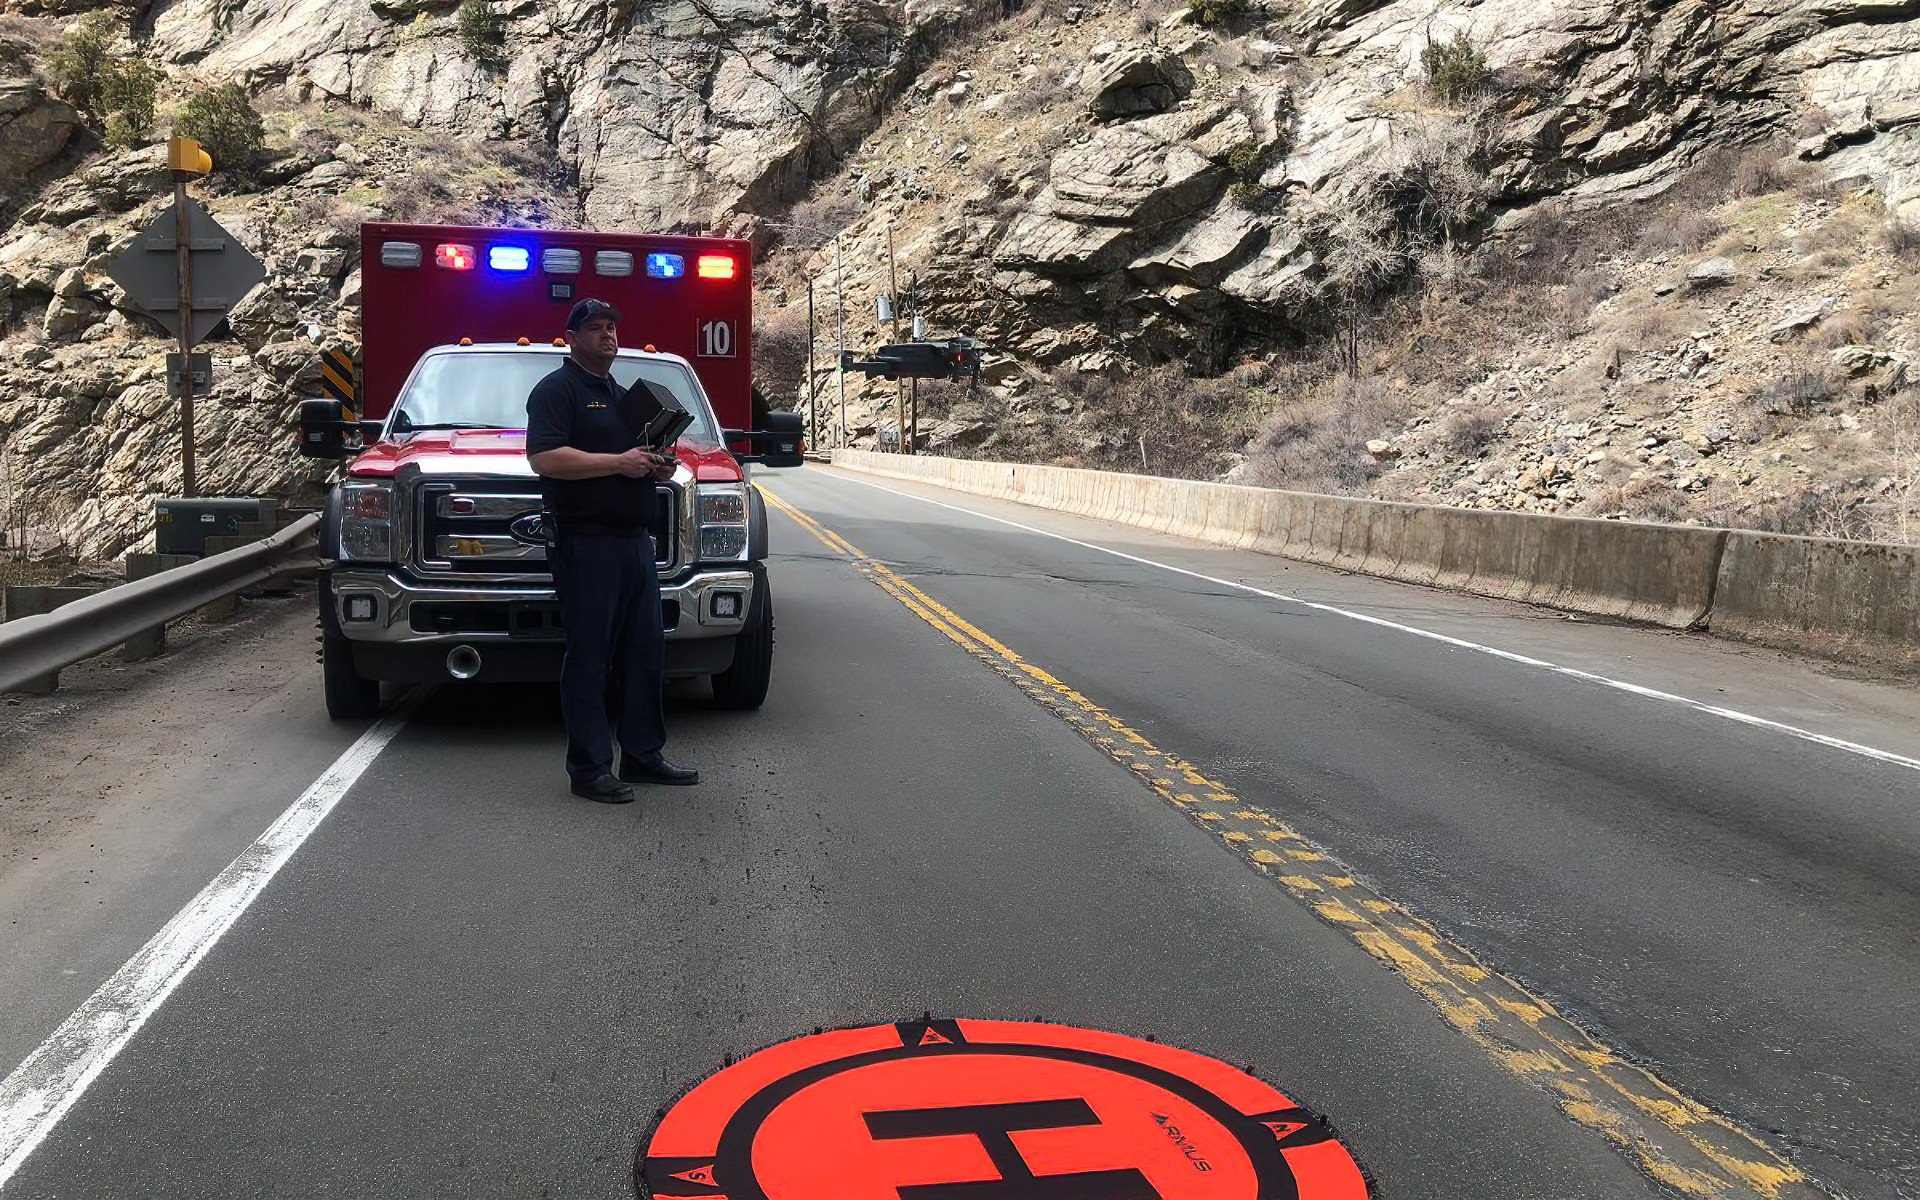 Injured hiker rescued from Clear Creek Canyon with help of drone